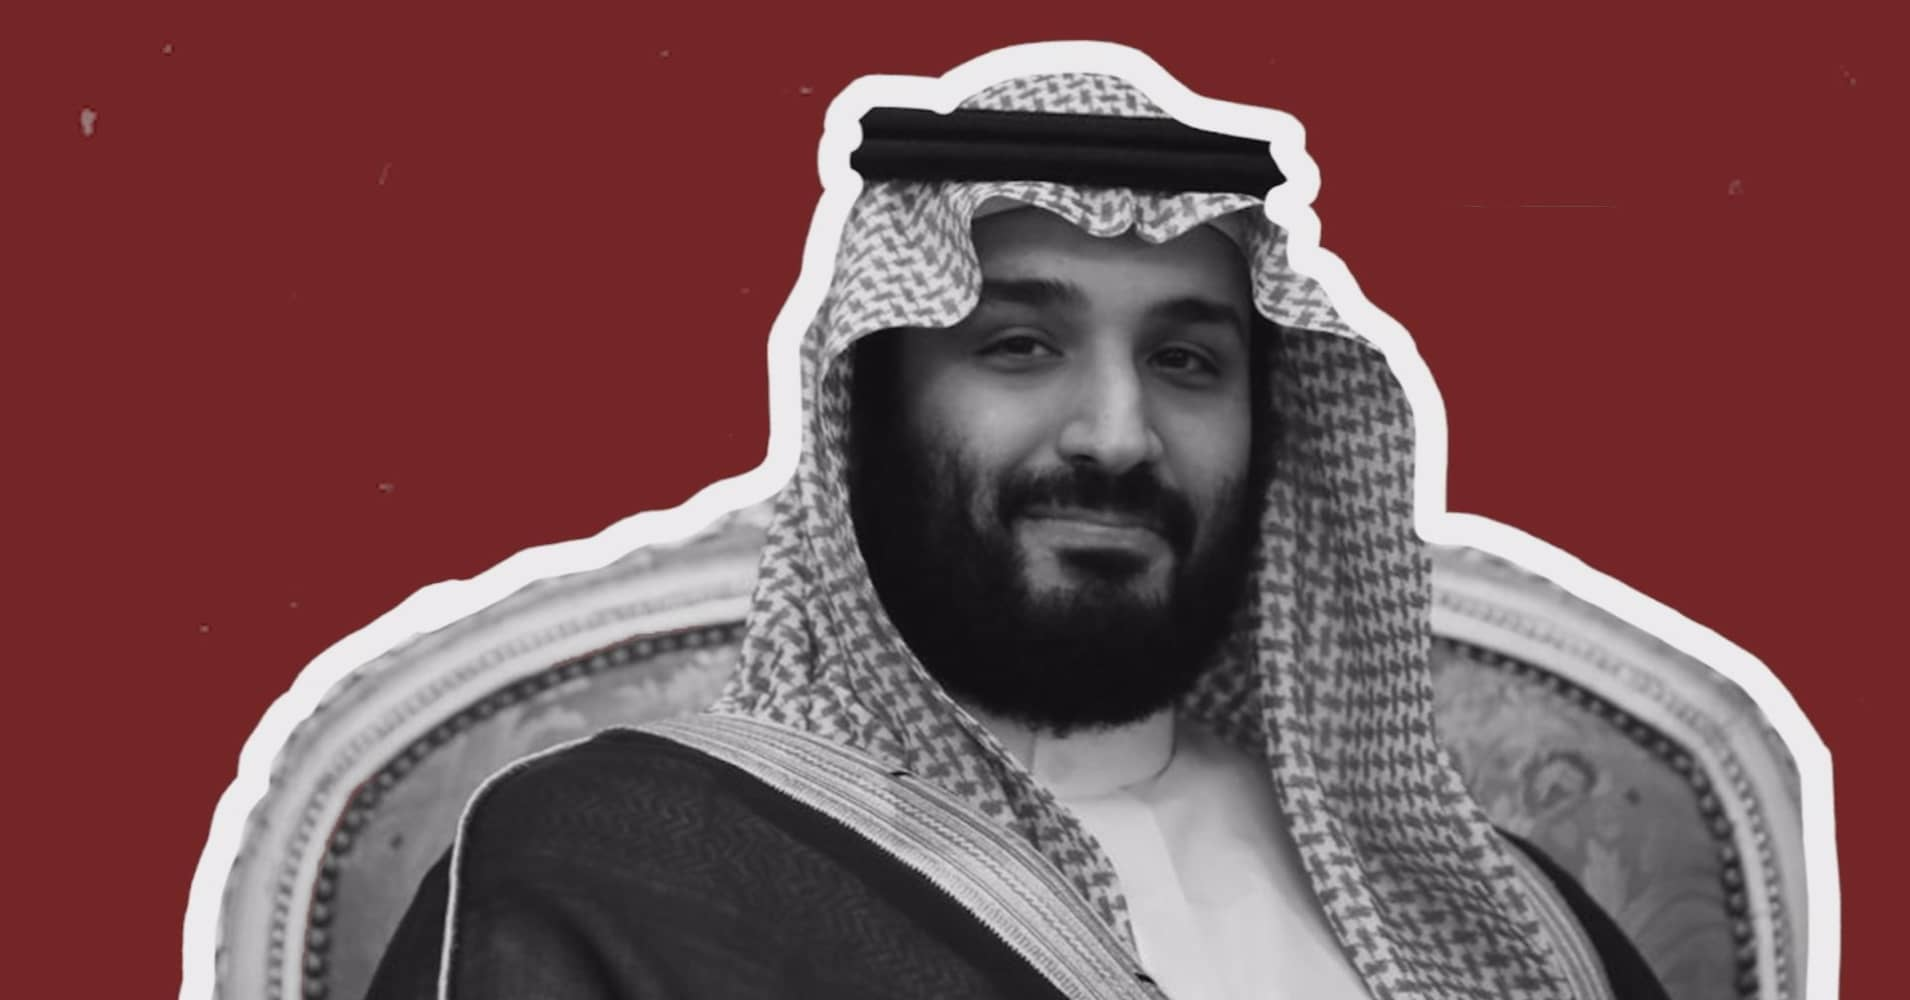 Who is MBS? The prince at the center of Saudi Arabia's